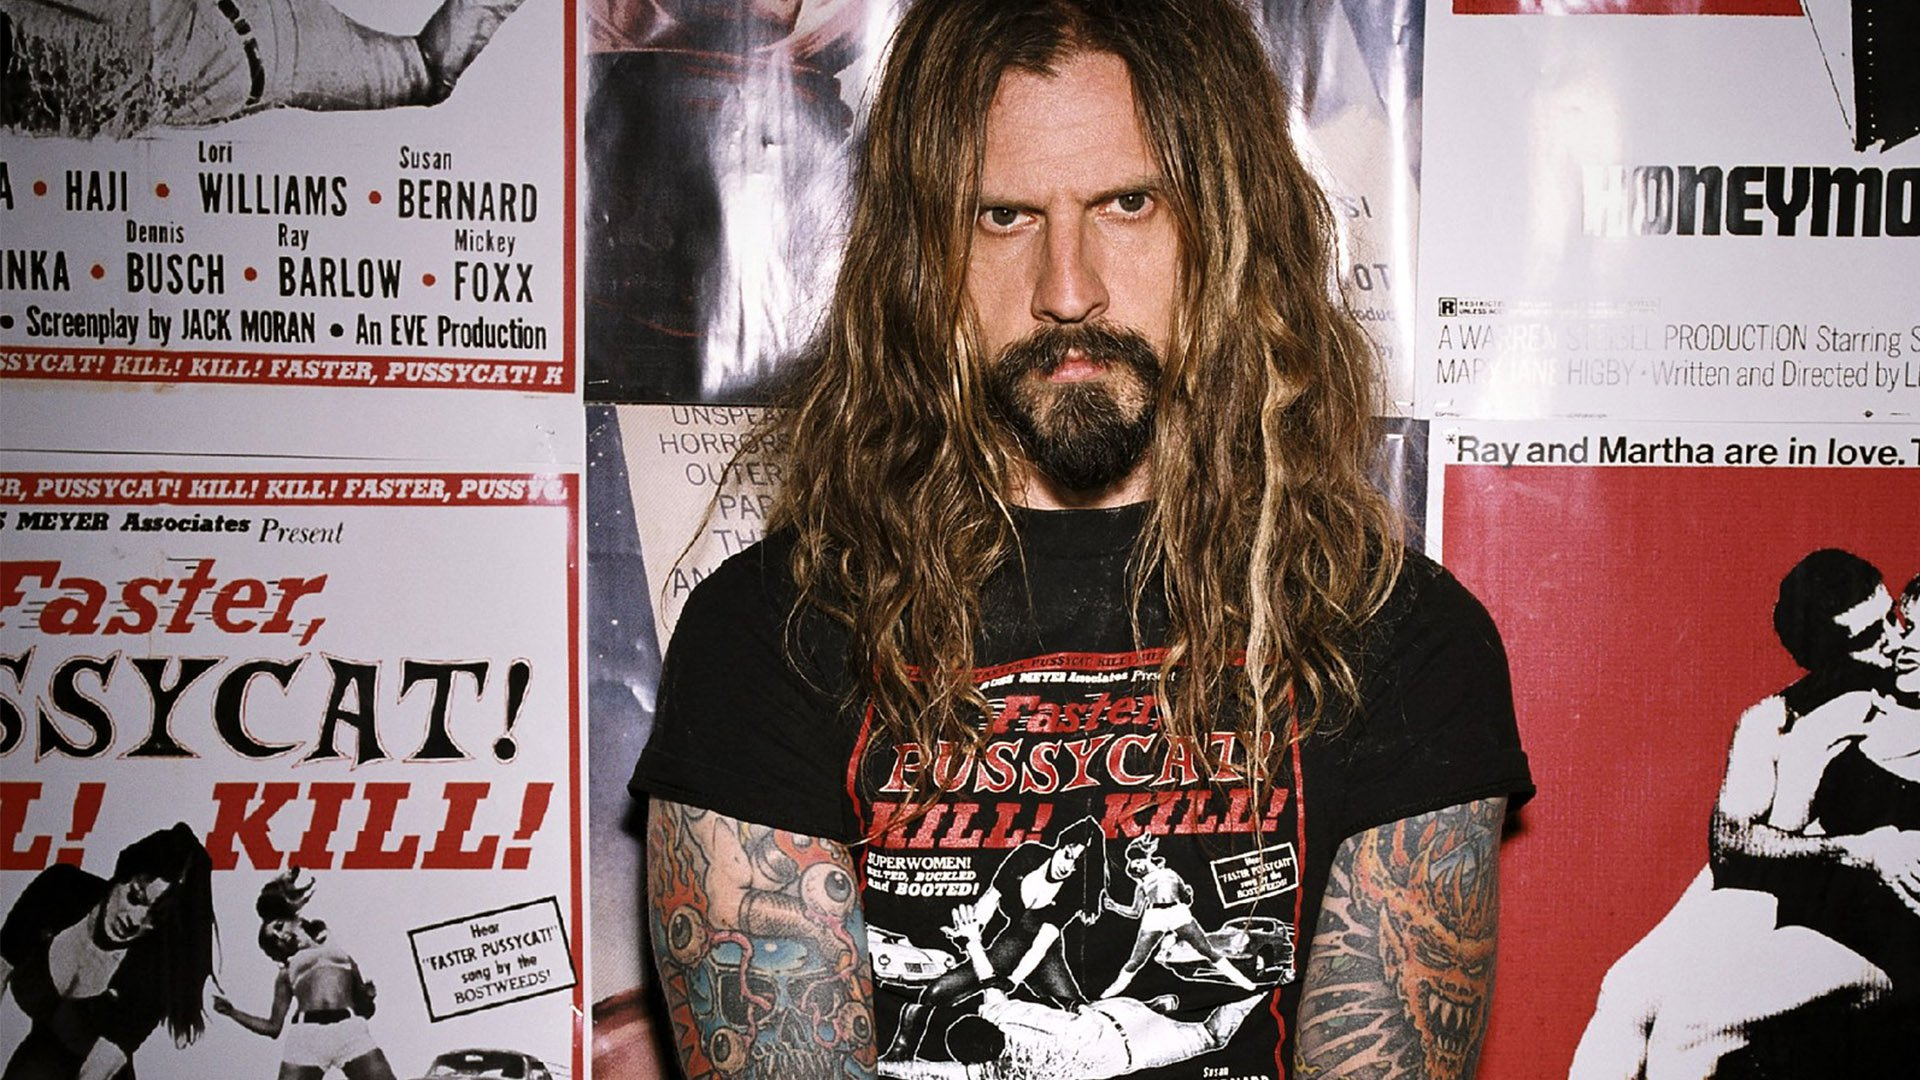 EDITORIAL: The Exploitation and Eccentricities of Rob Zombie and His Films